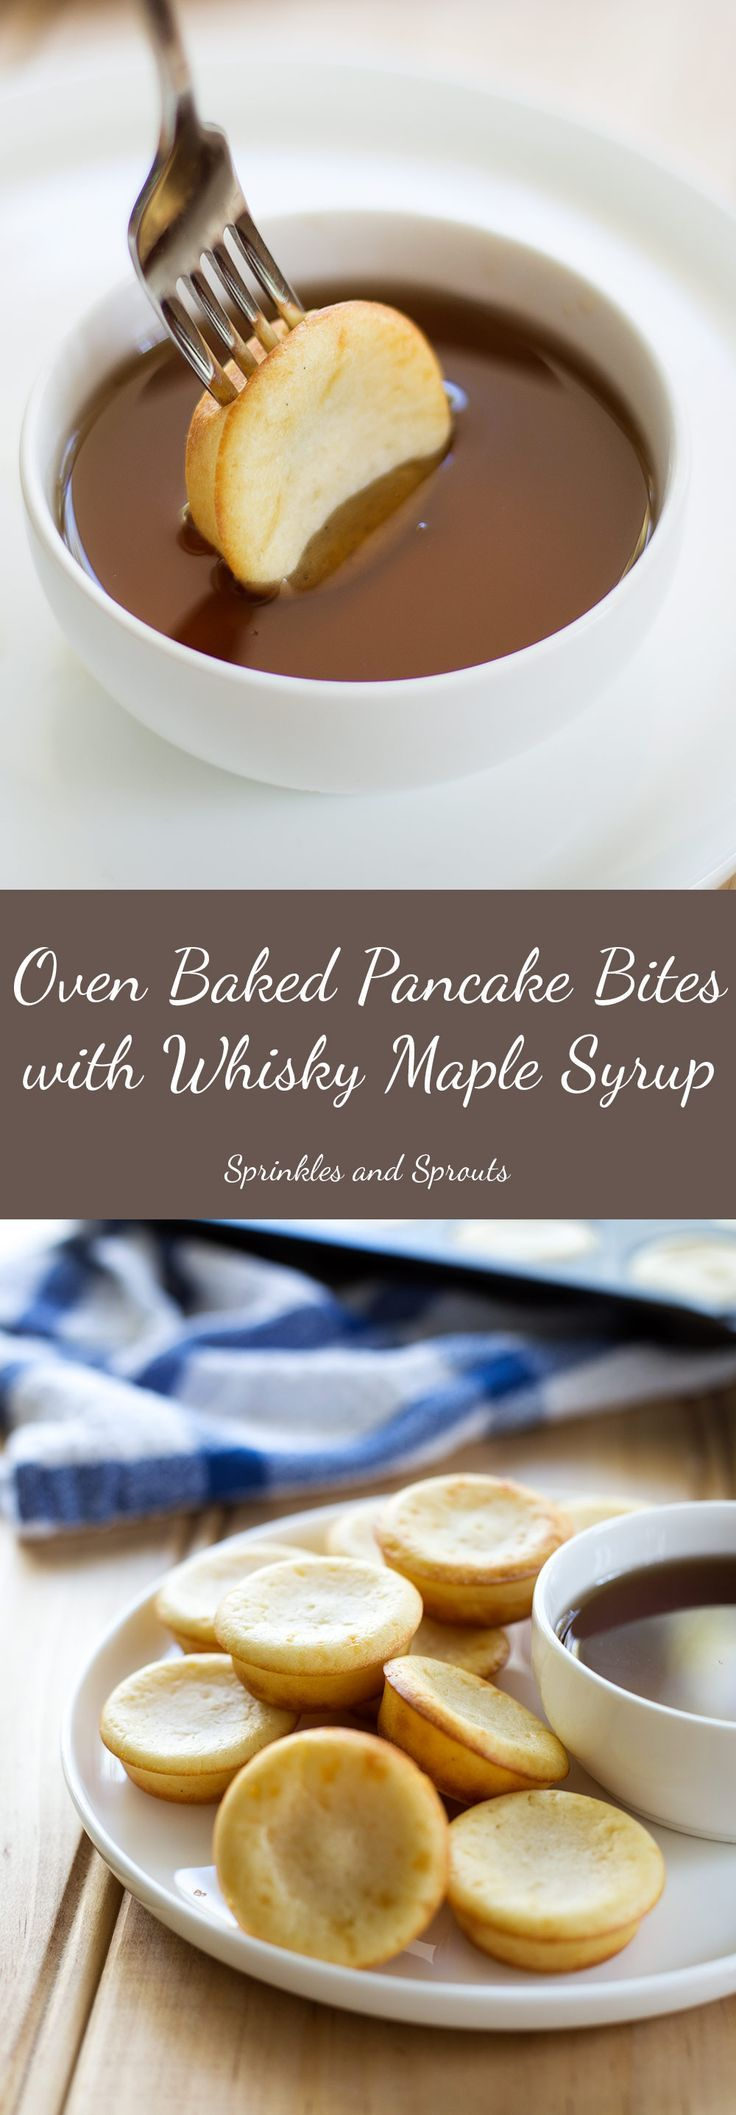 Oven Baked Pancake Bites with Whisky Maple Syrup. They look like cupcakes and taste like pancakes. The perfect treat for breakfast, easy to make, simple to bake and delicious to eat. #brunch